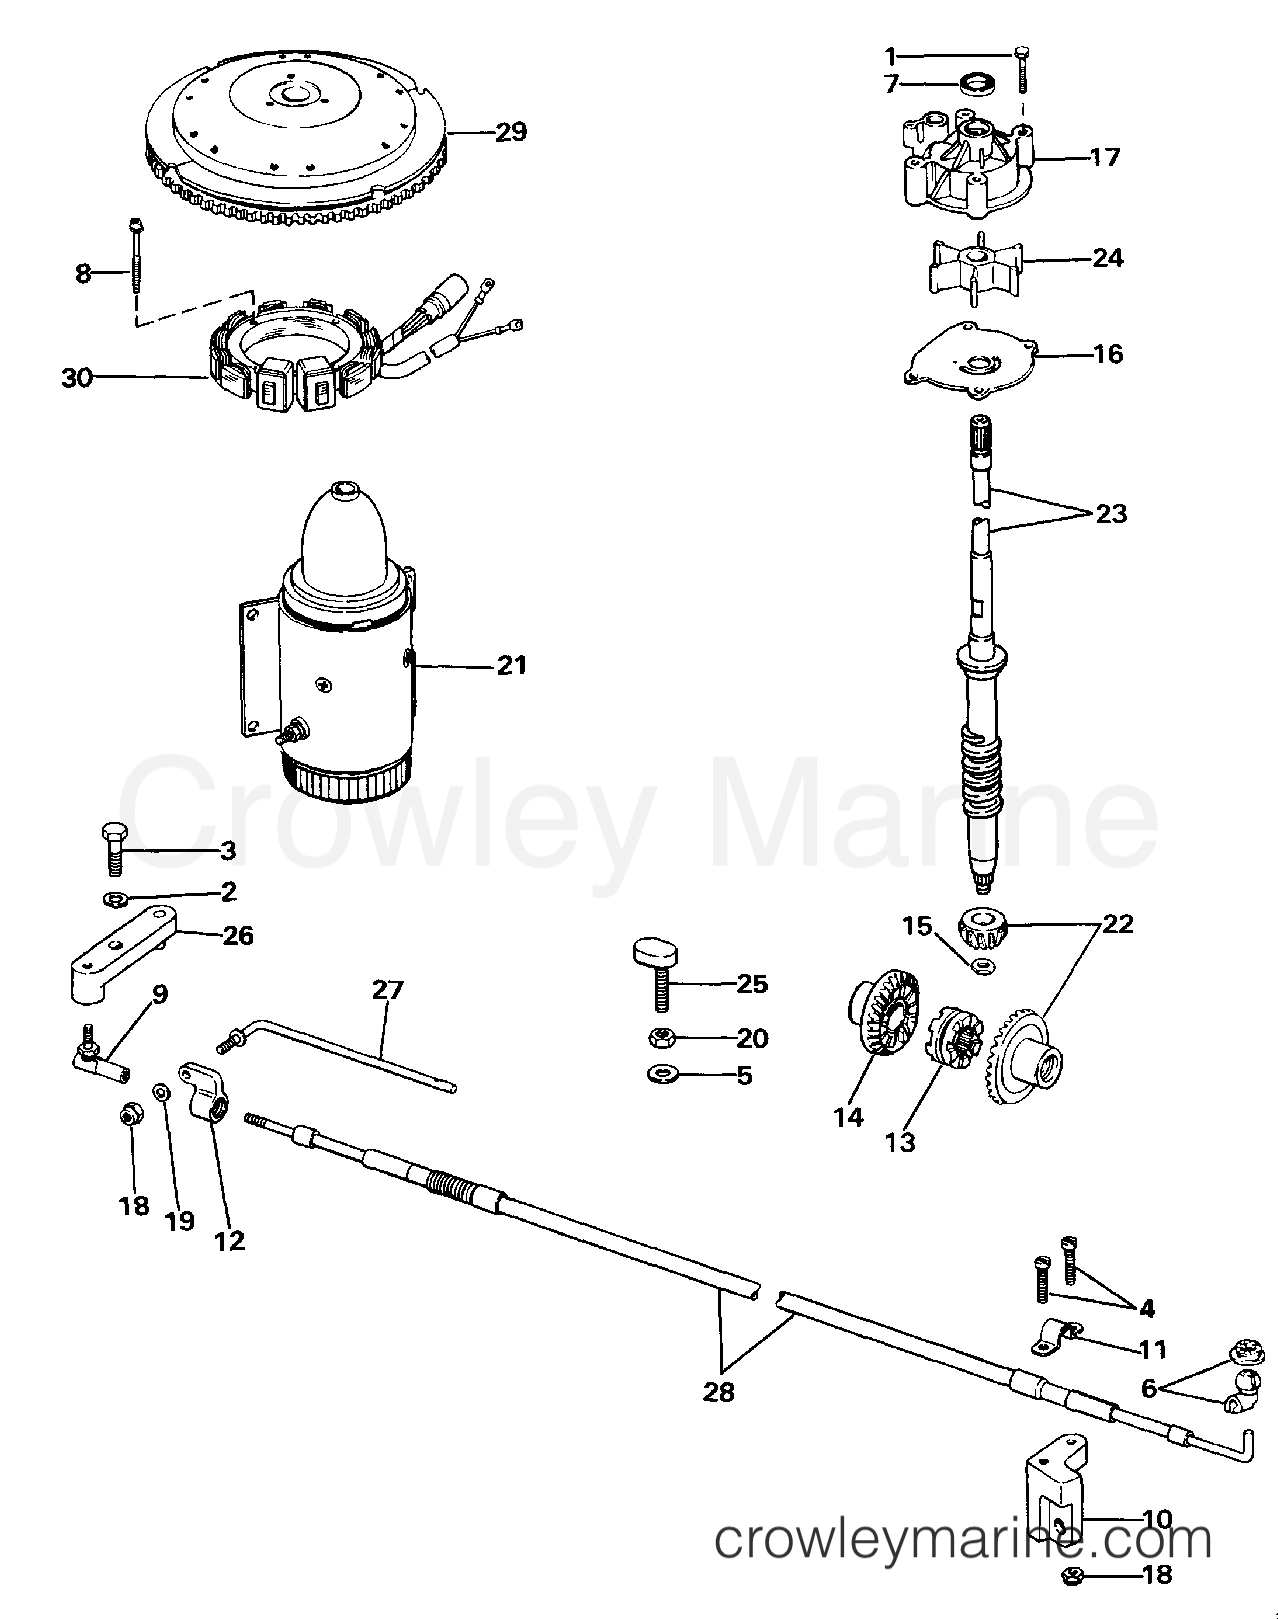 1986 Evinrude Outboards 275 - CE275TLCDC COUNTER ROTATION GEARCASE KIT section